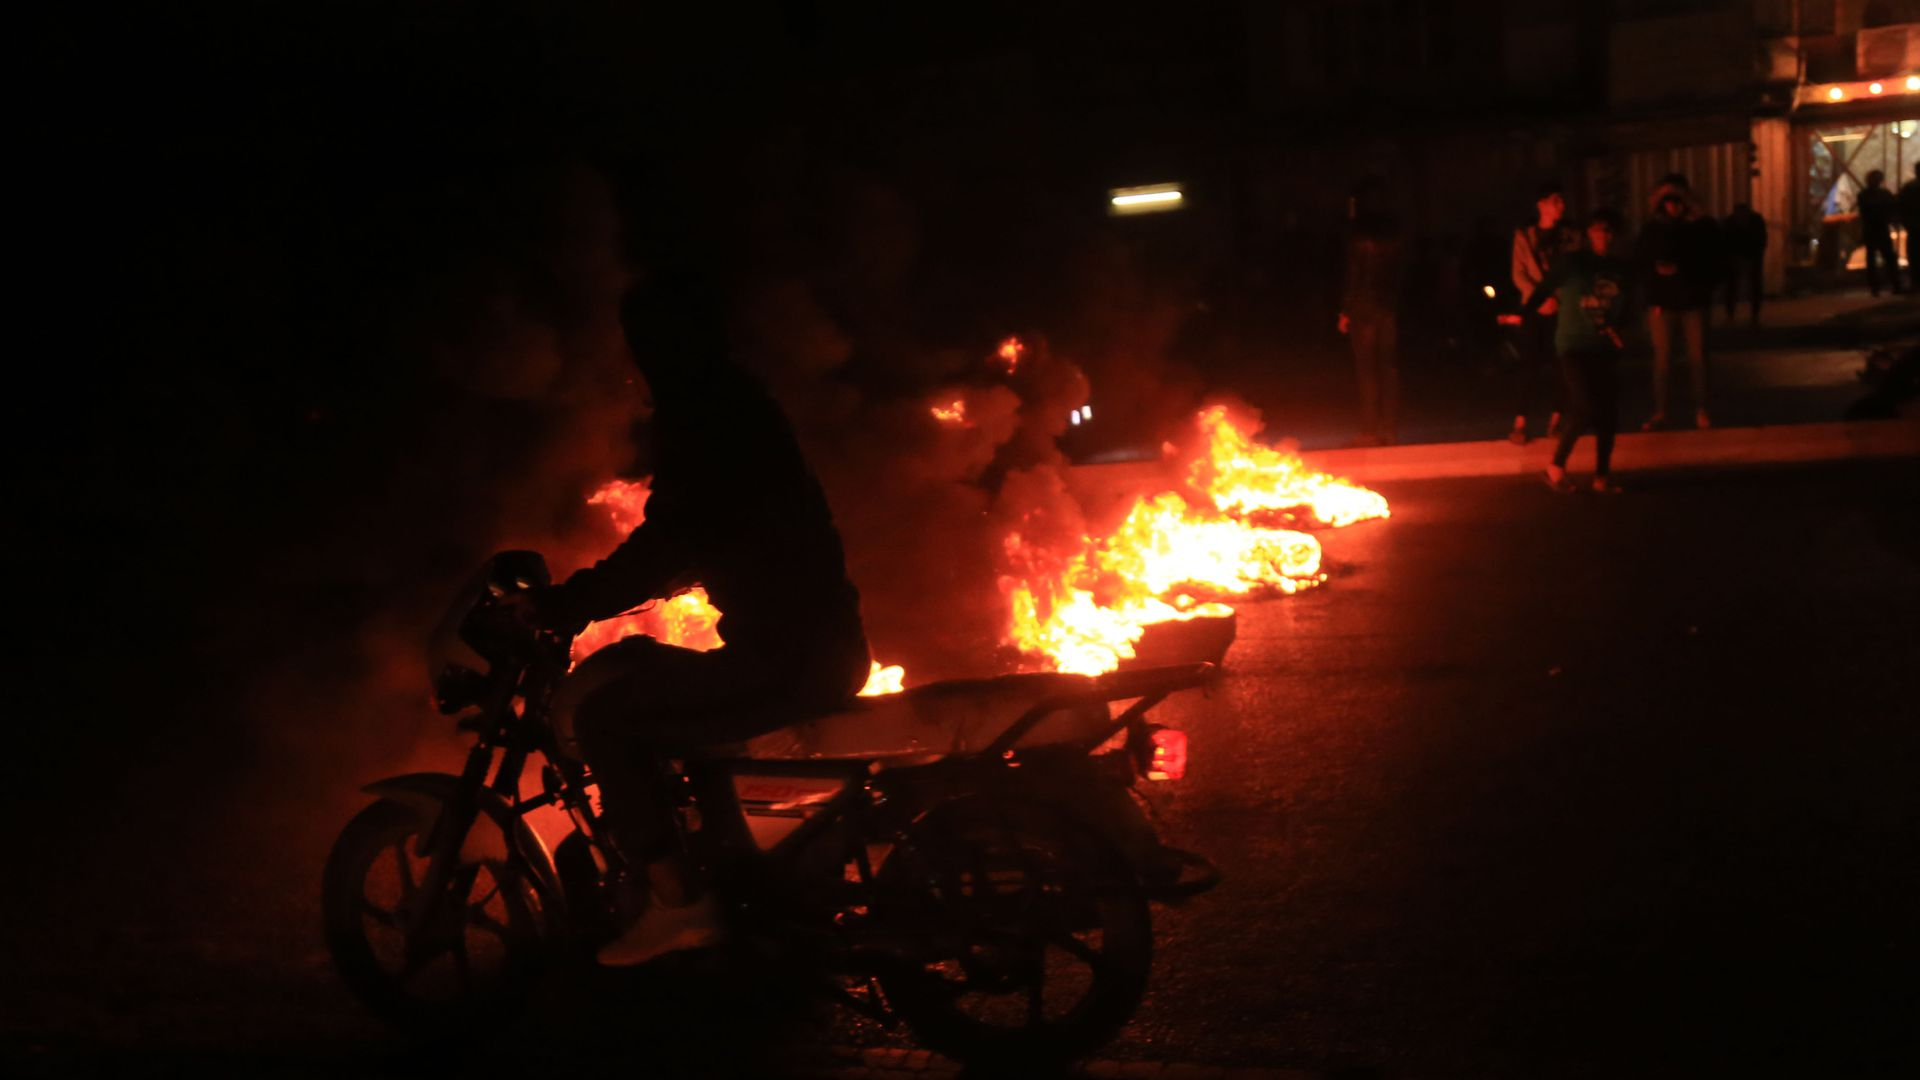 A person riding a bike with a protest in the dark and fire in the background.